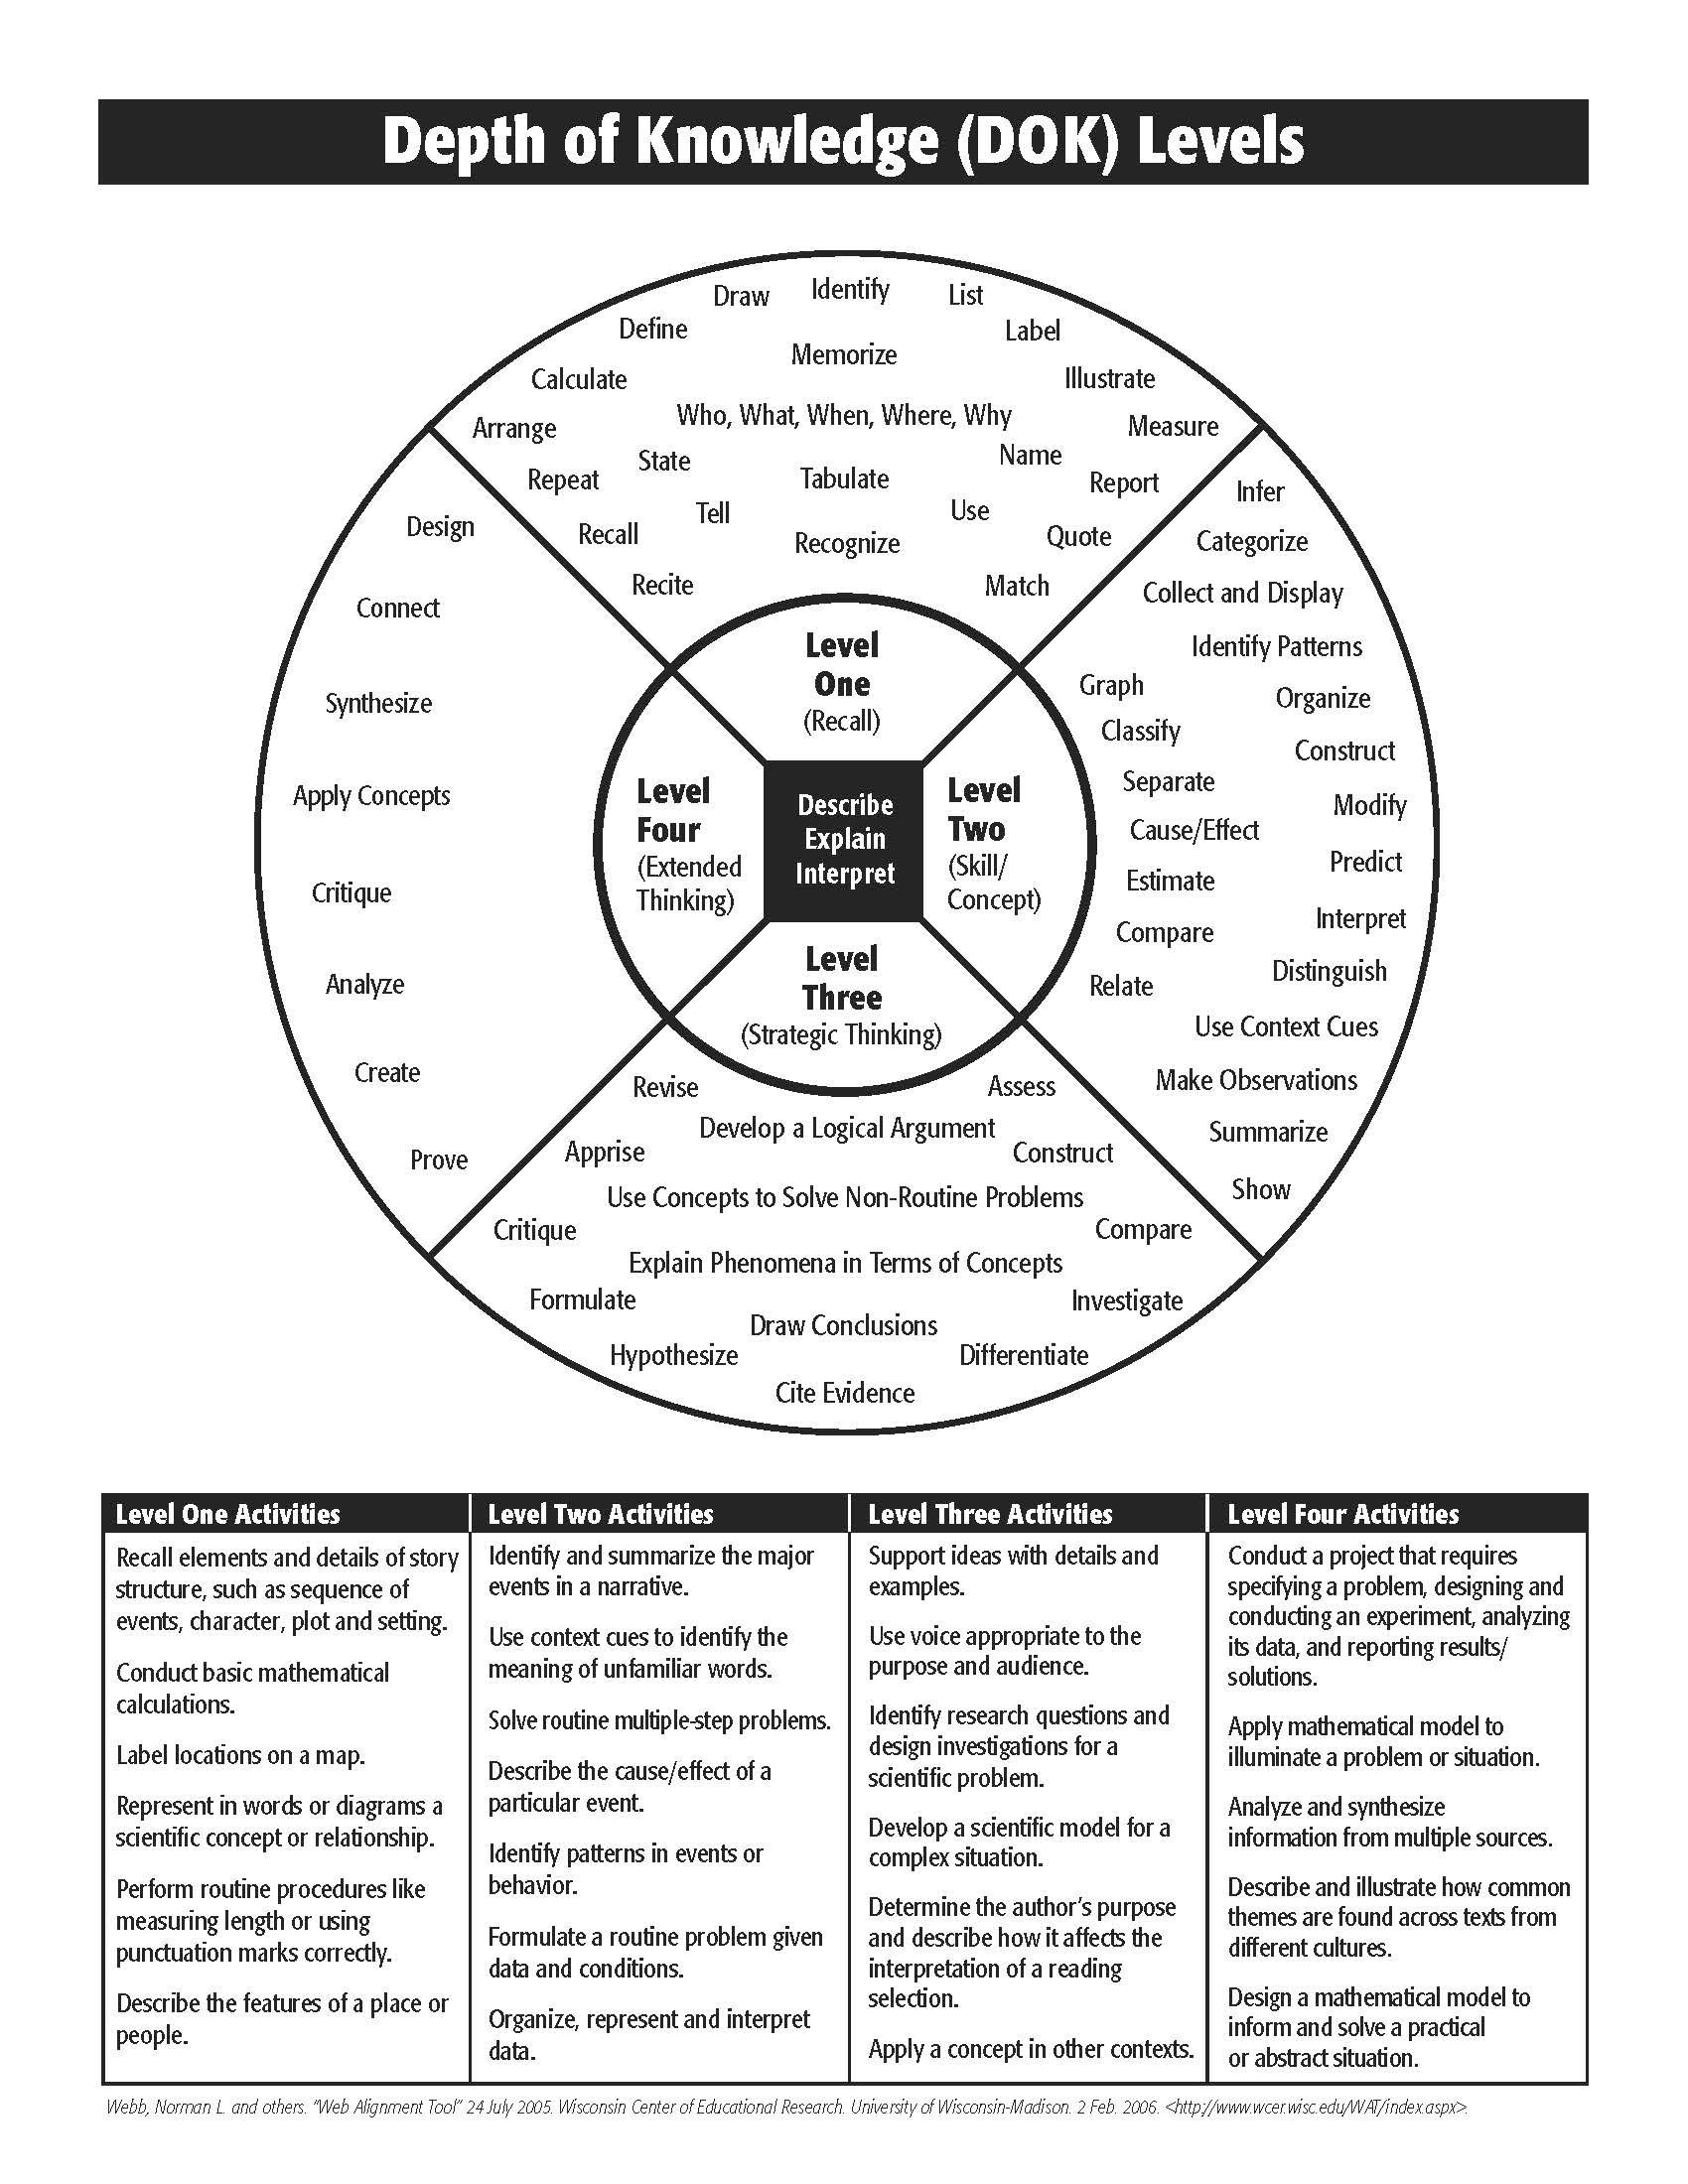 norman webb's depth of knowledge model - Google Search